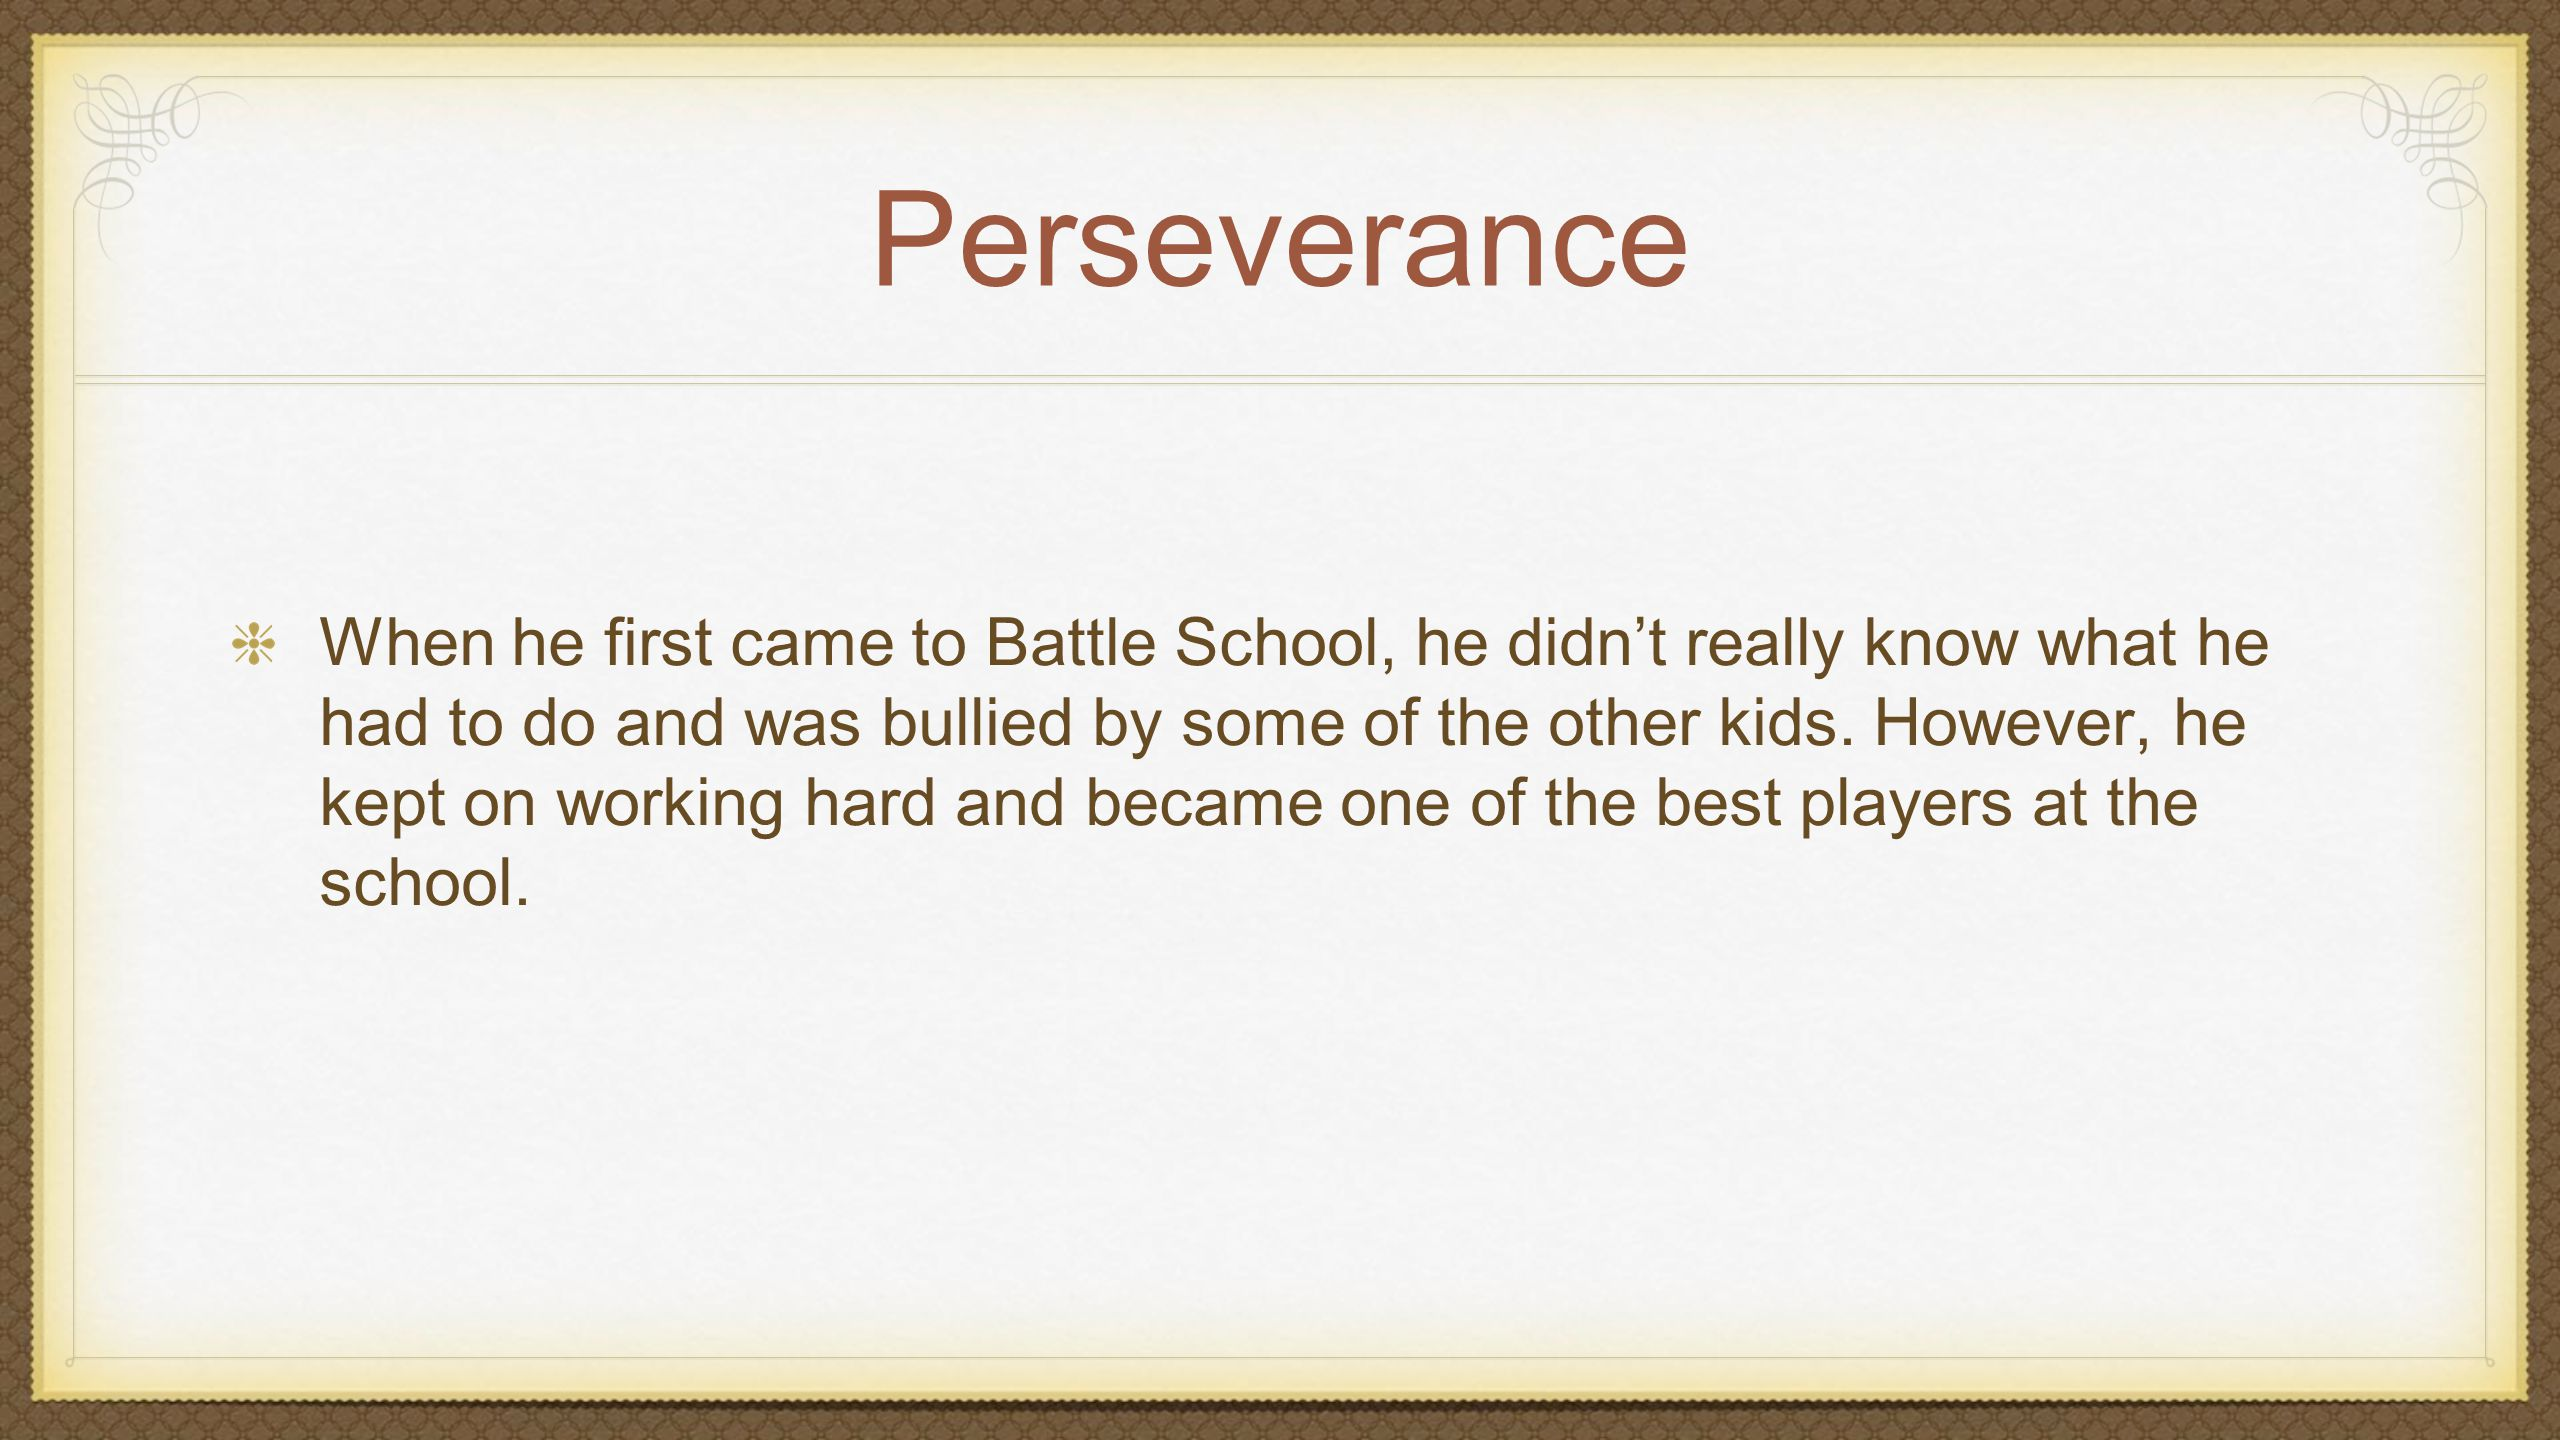 Perseverance When he first came to Battle School, he didn't really know what he had to do and was bullied by some of the other kids.